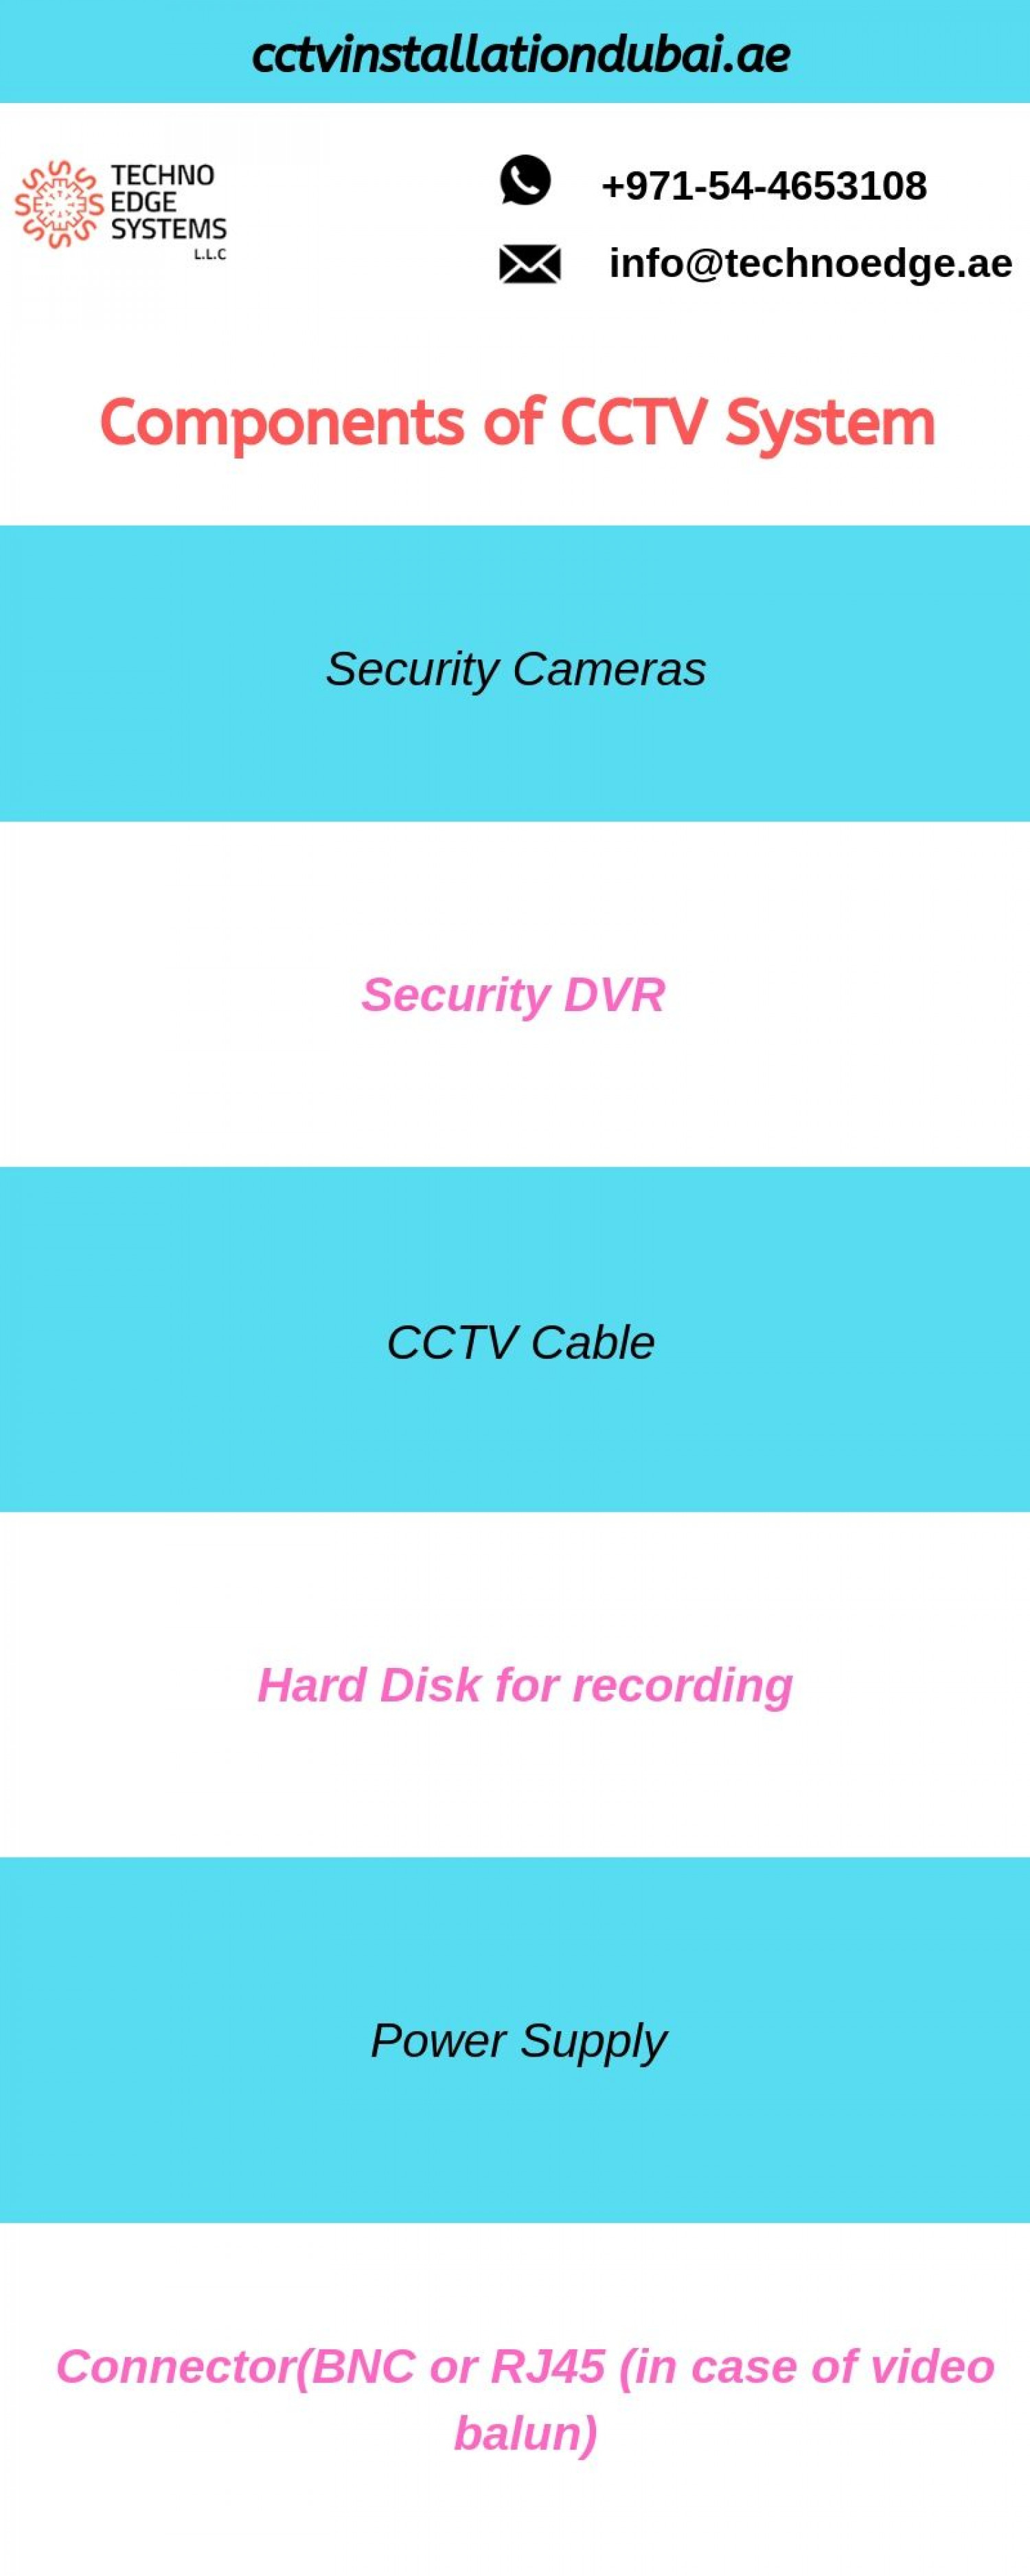 Components of CCTV System Infographic